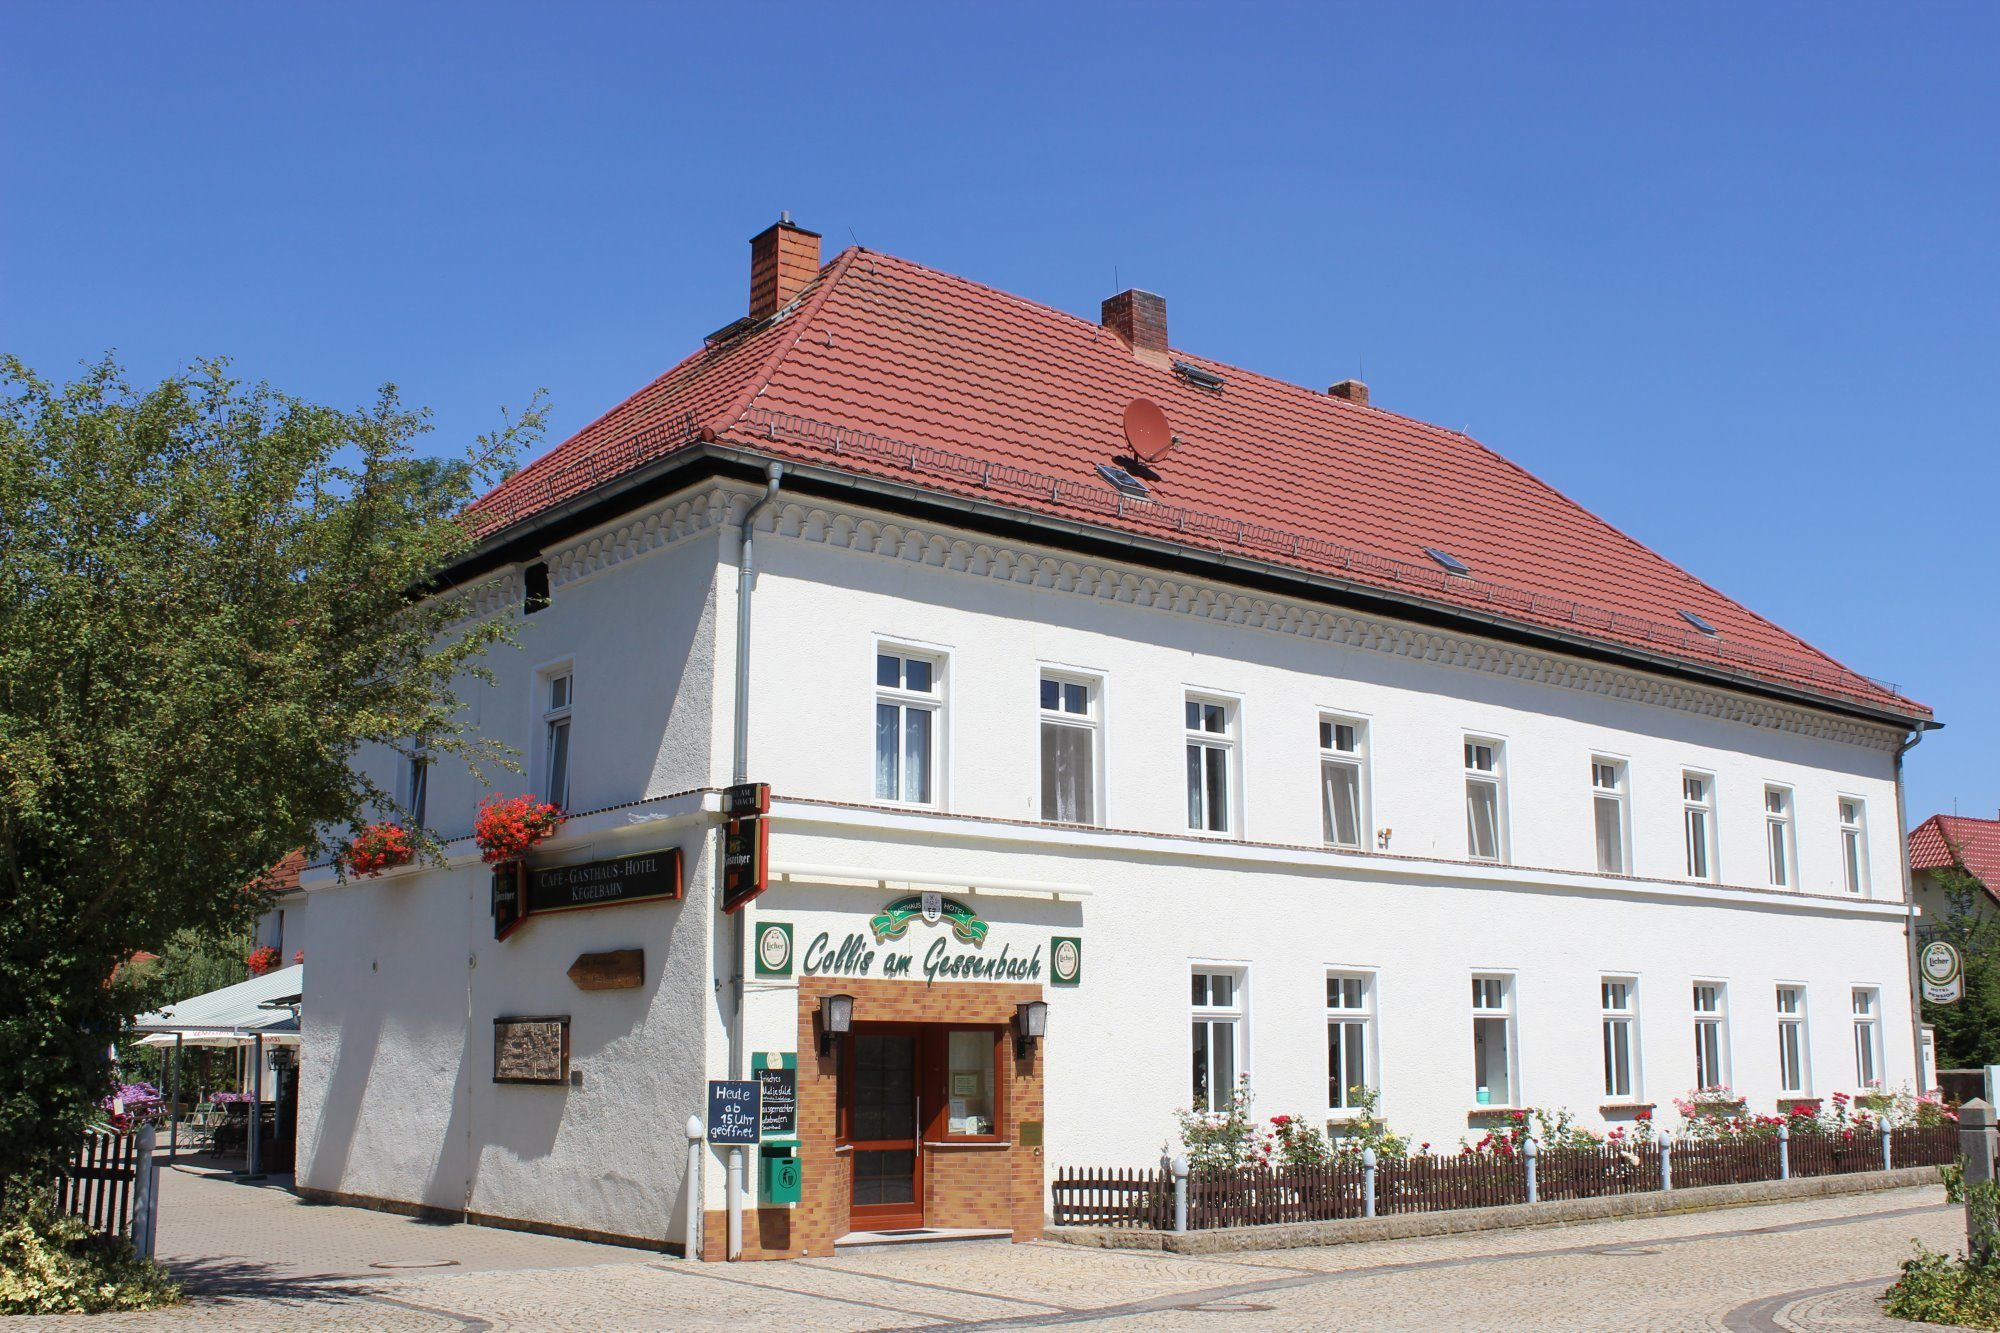 Hotel Collis am Gessenbach